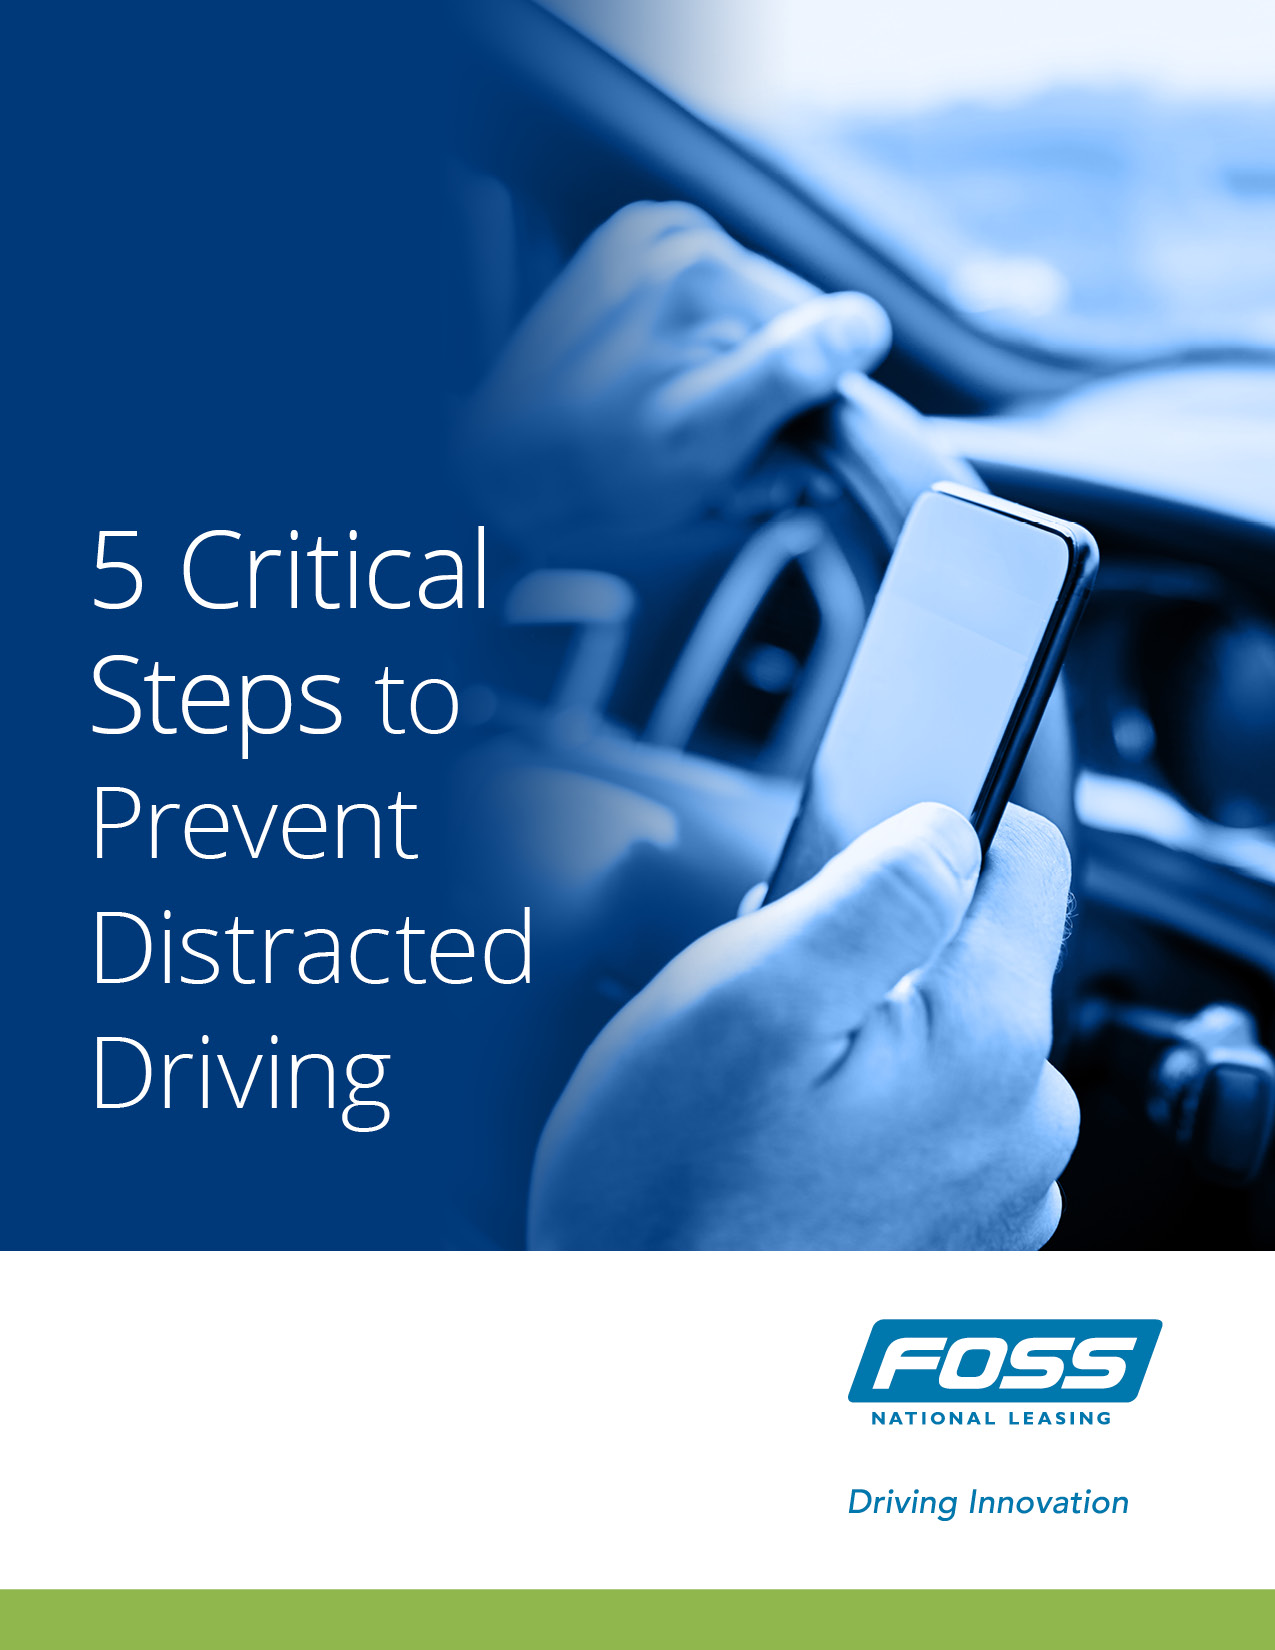 5 critical steps to prevent distracted driving